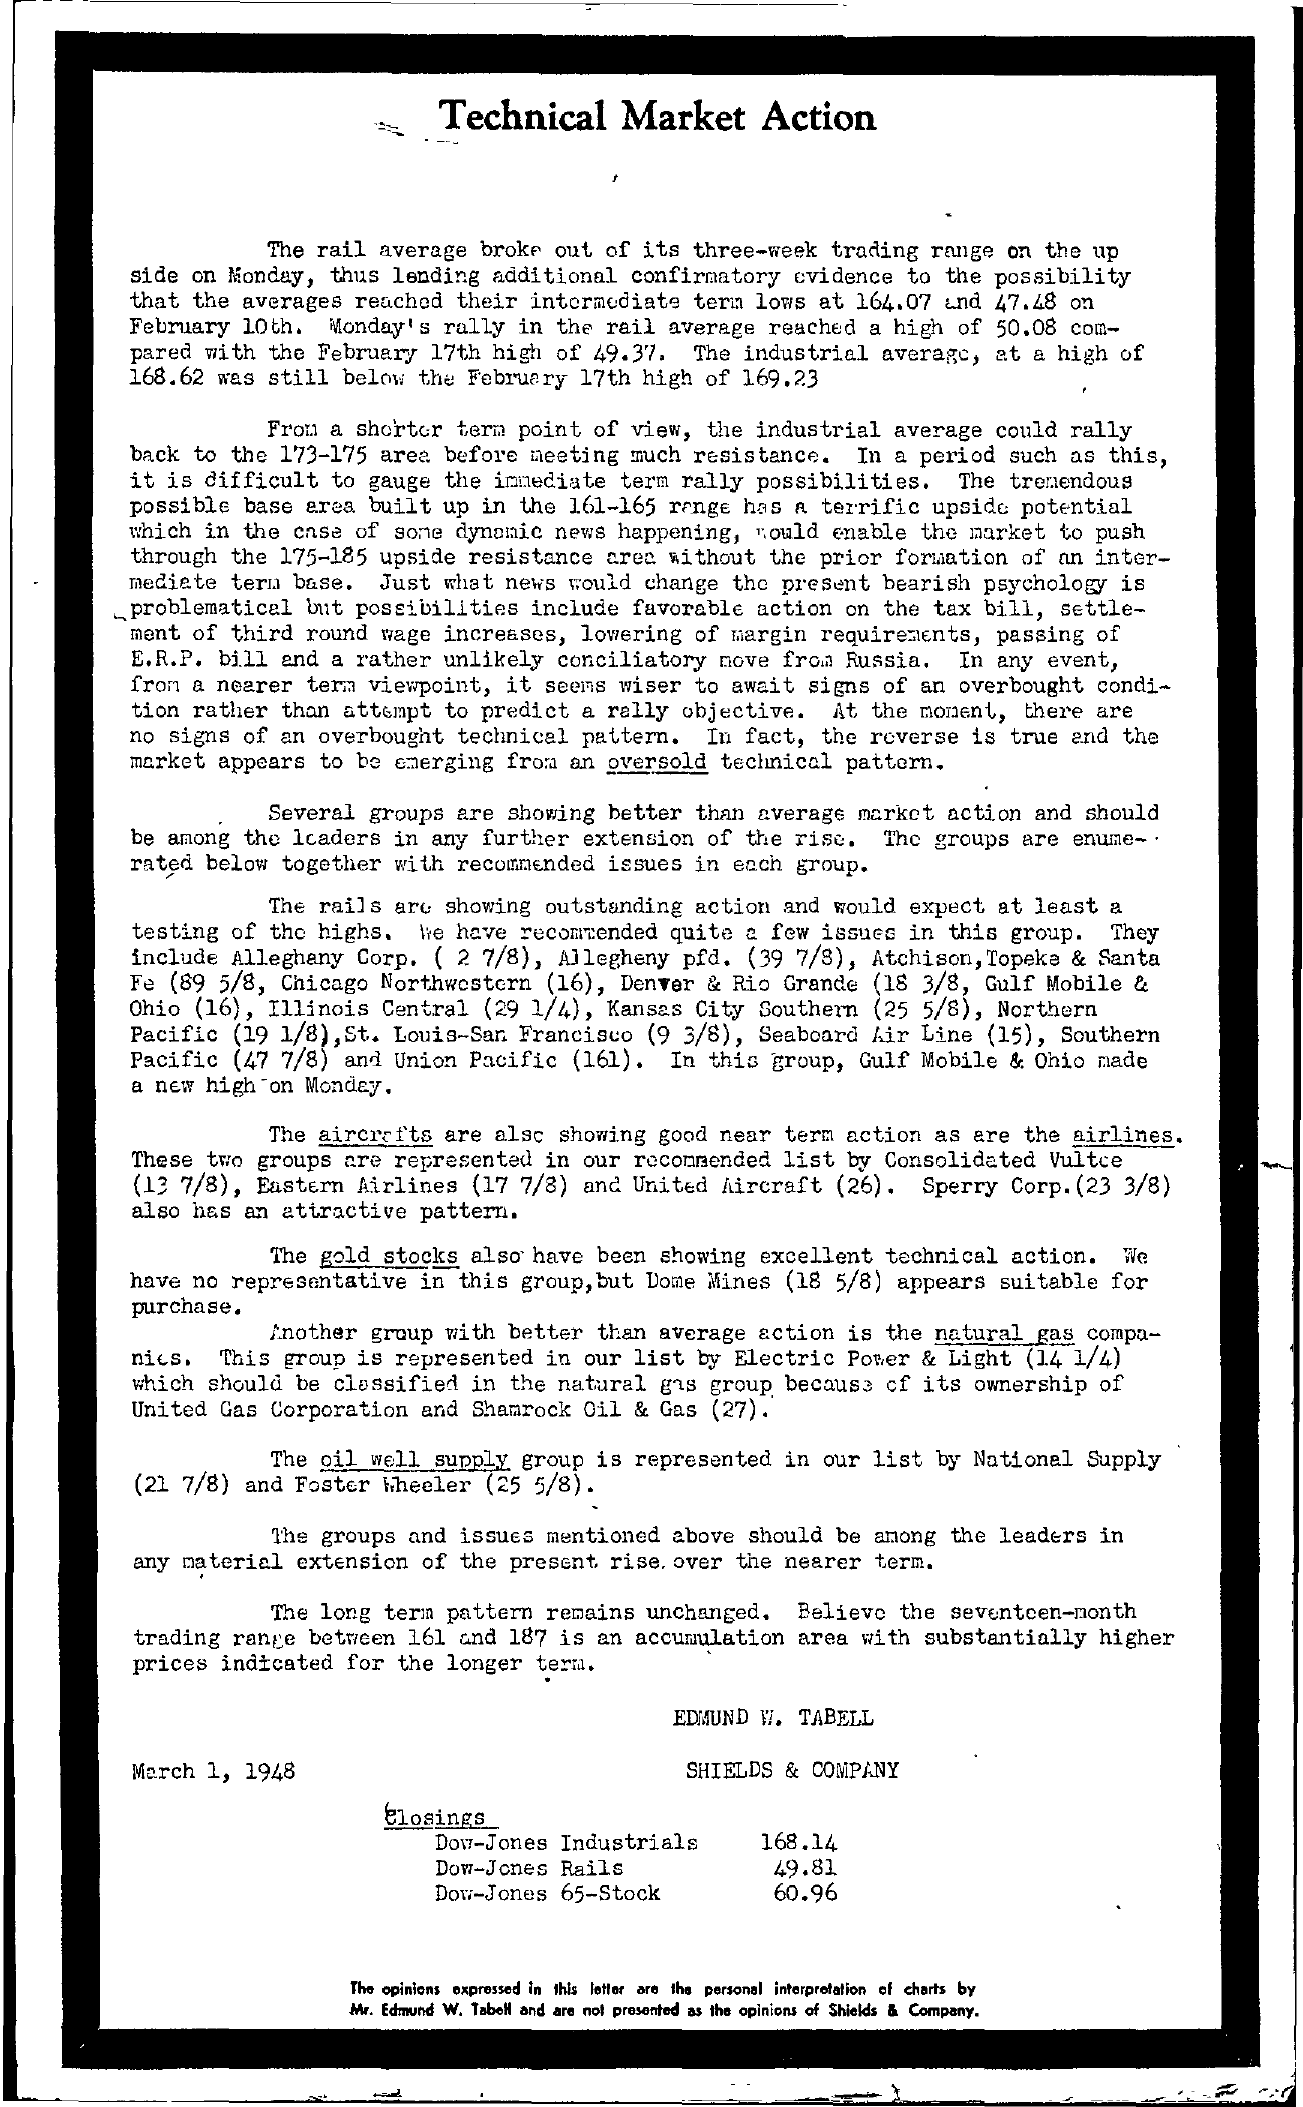 Tabell's Market Letter - March 01, 1948